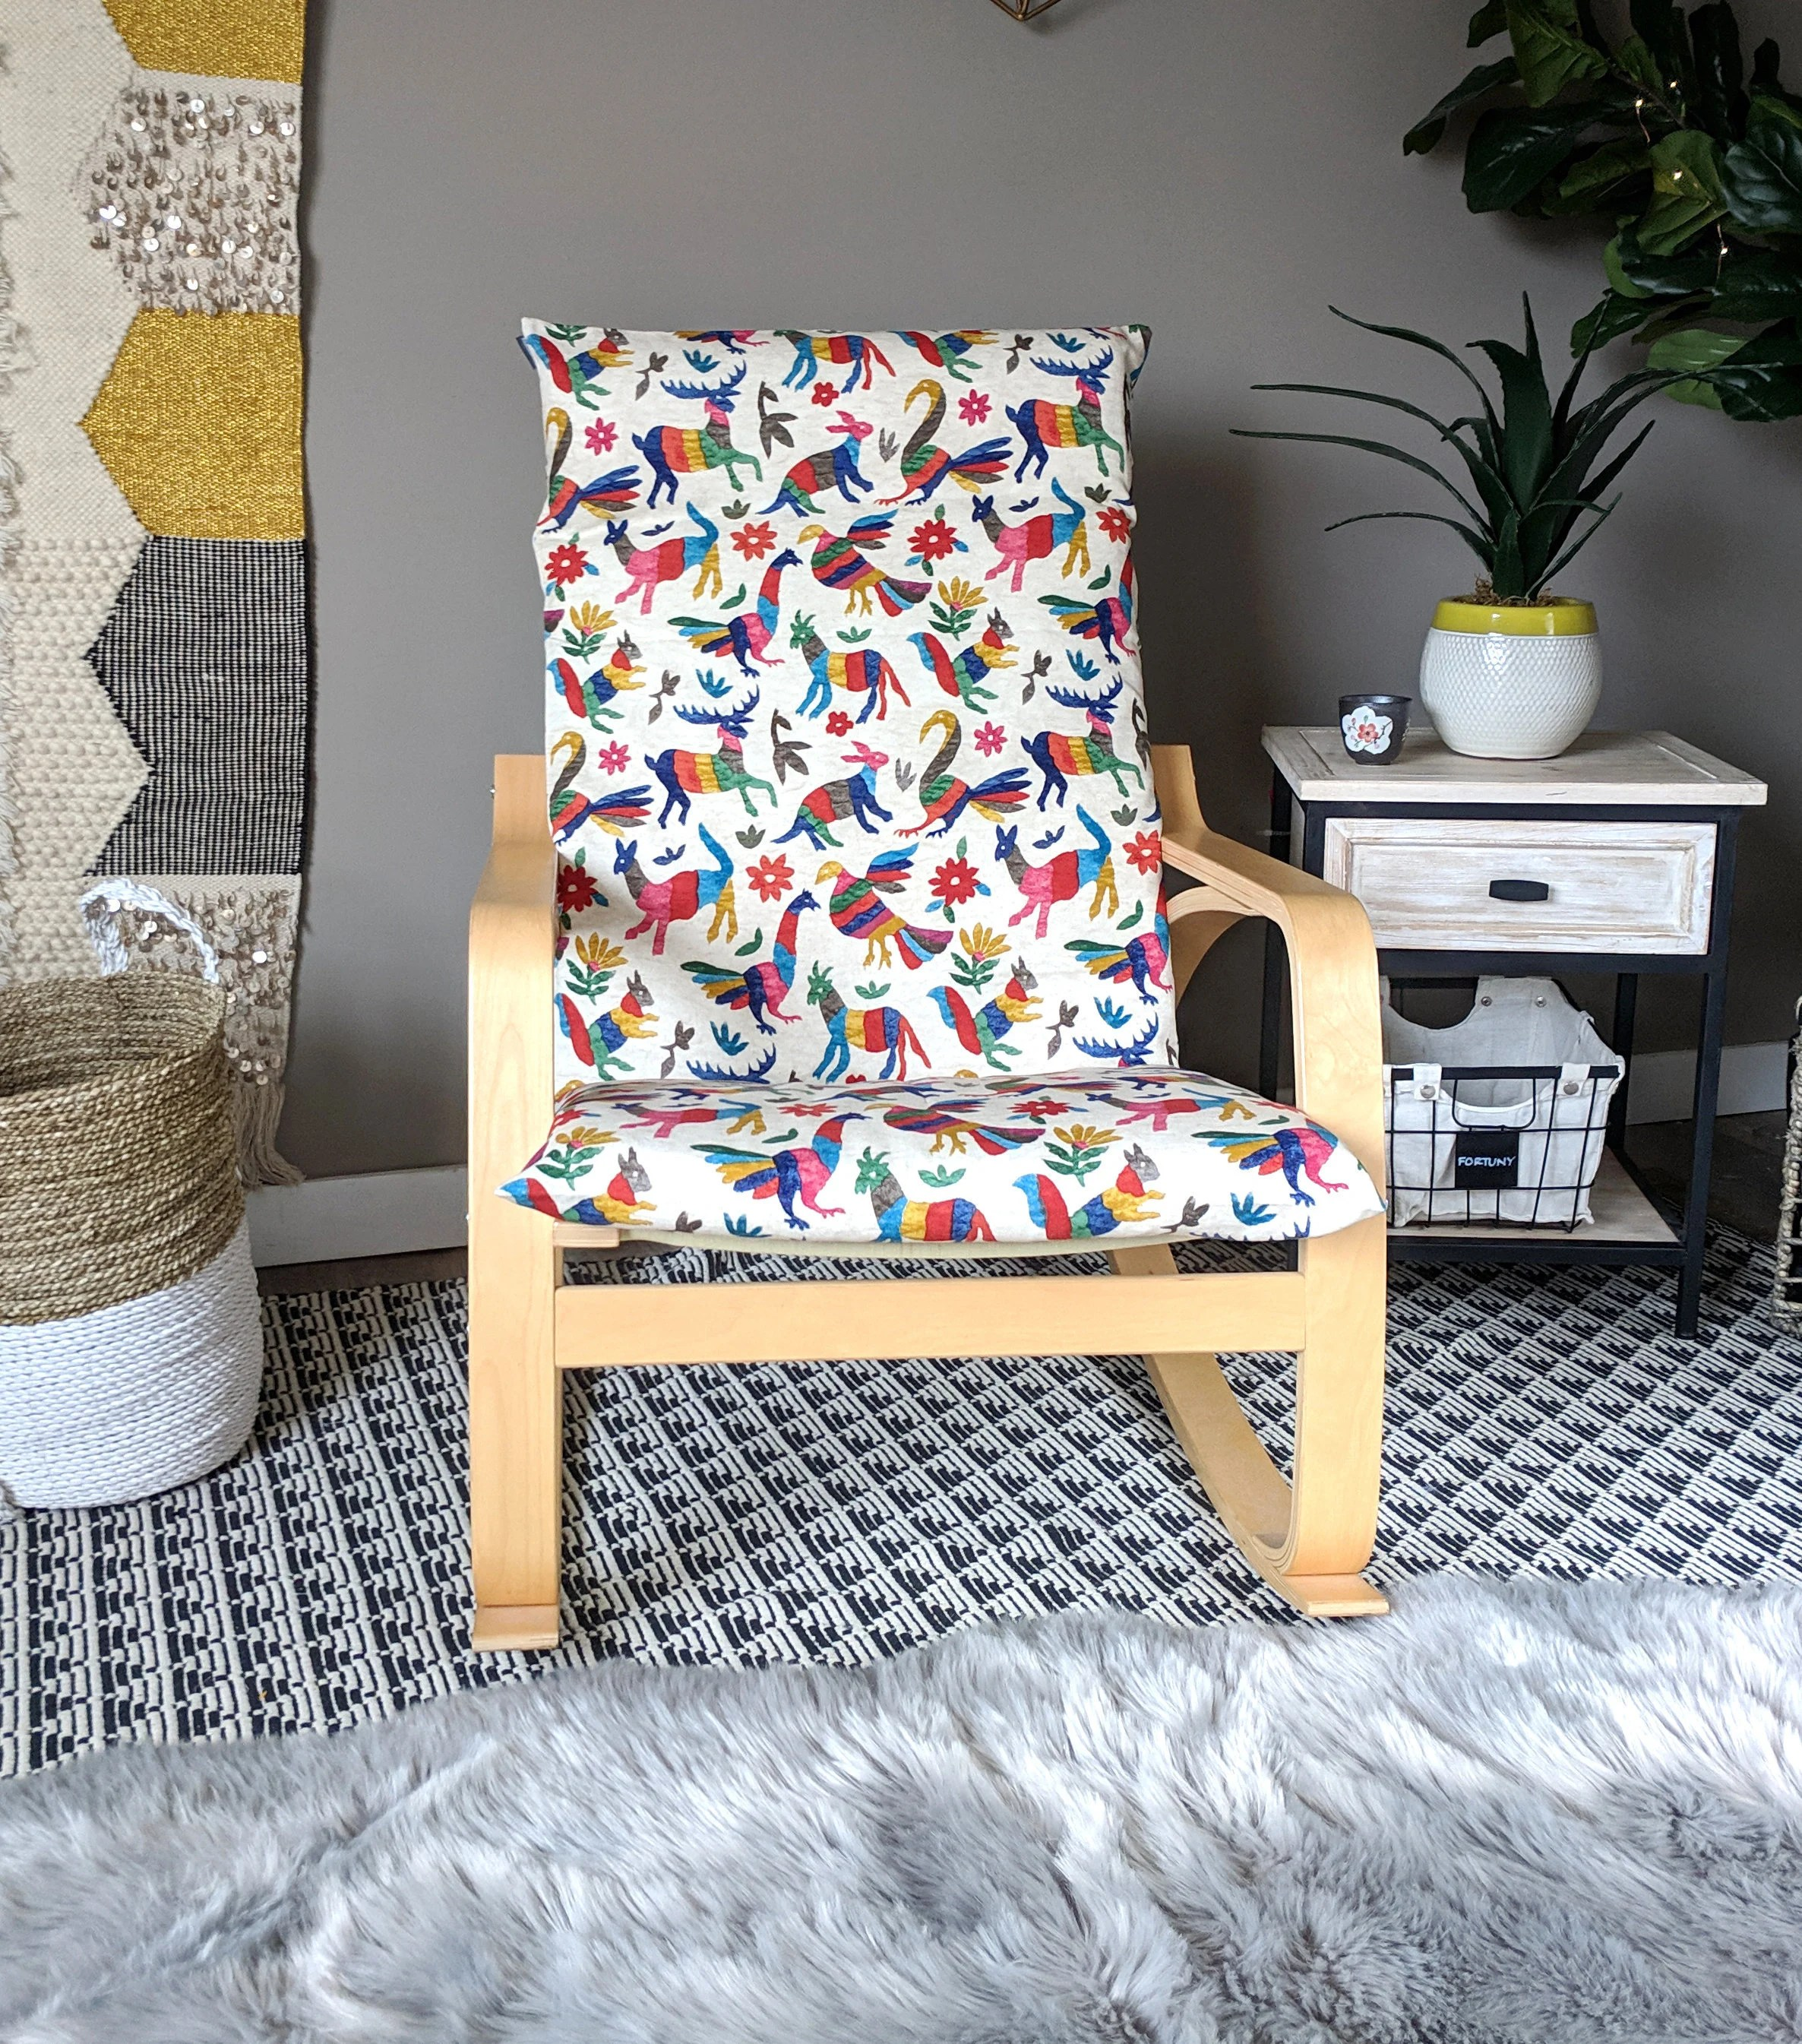 custom chair covers ikea buy otomi animal seat cover poang etsy image 0